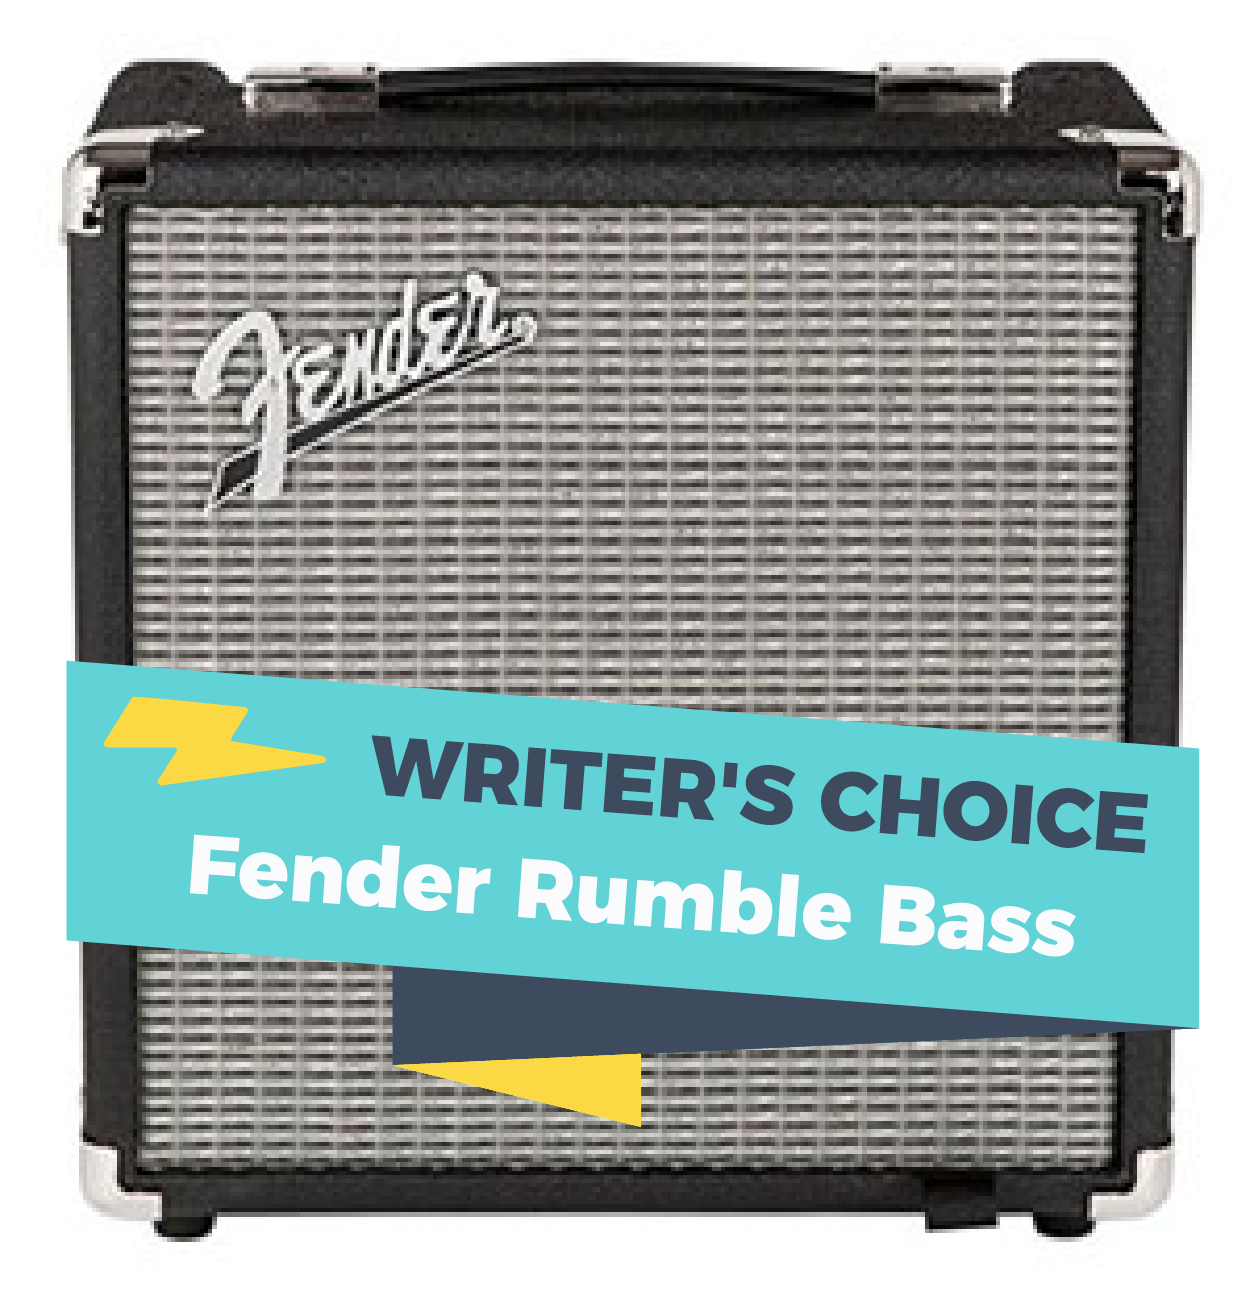 Fender Rumble Bass Amp, one of the best amps for busking out there.